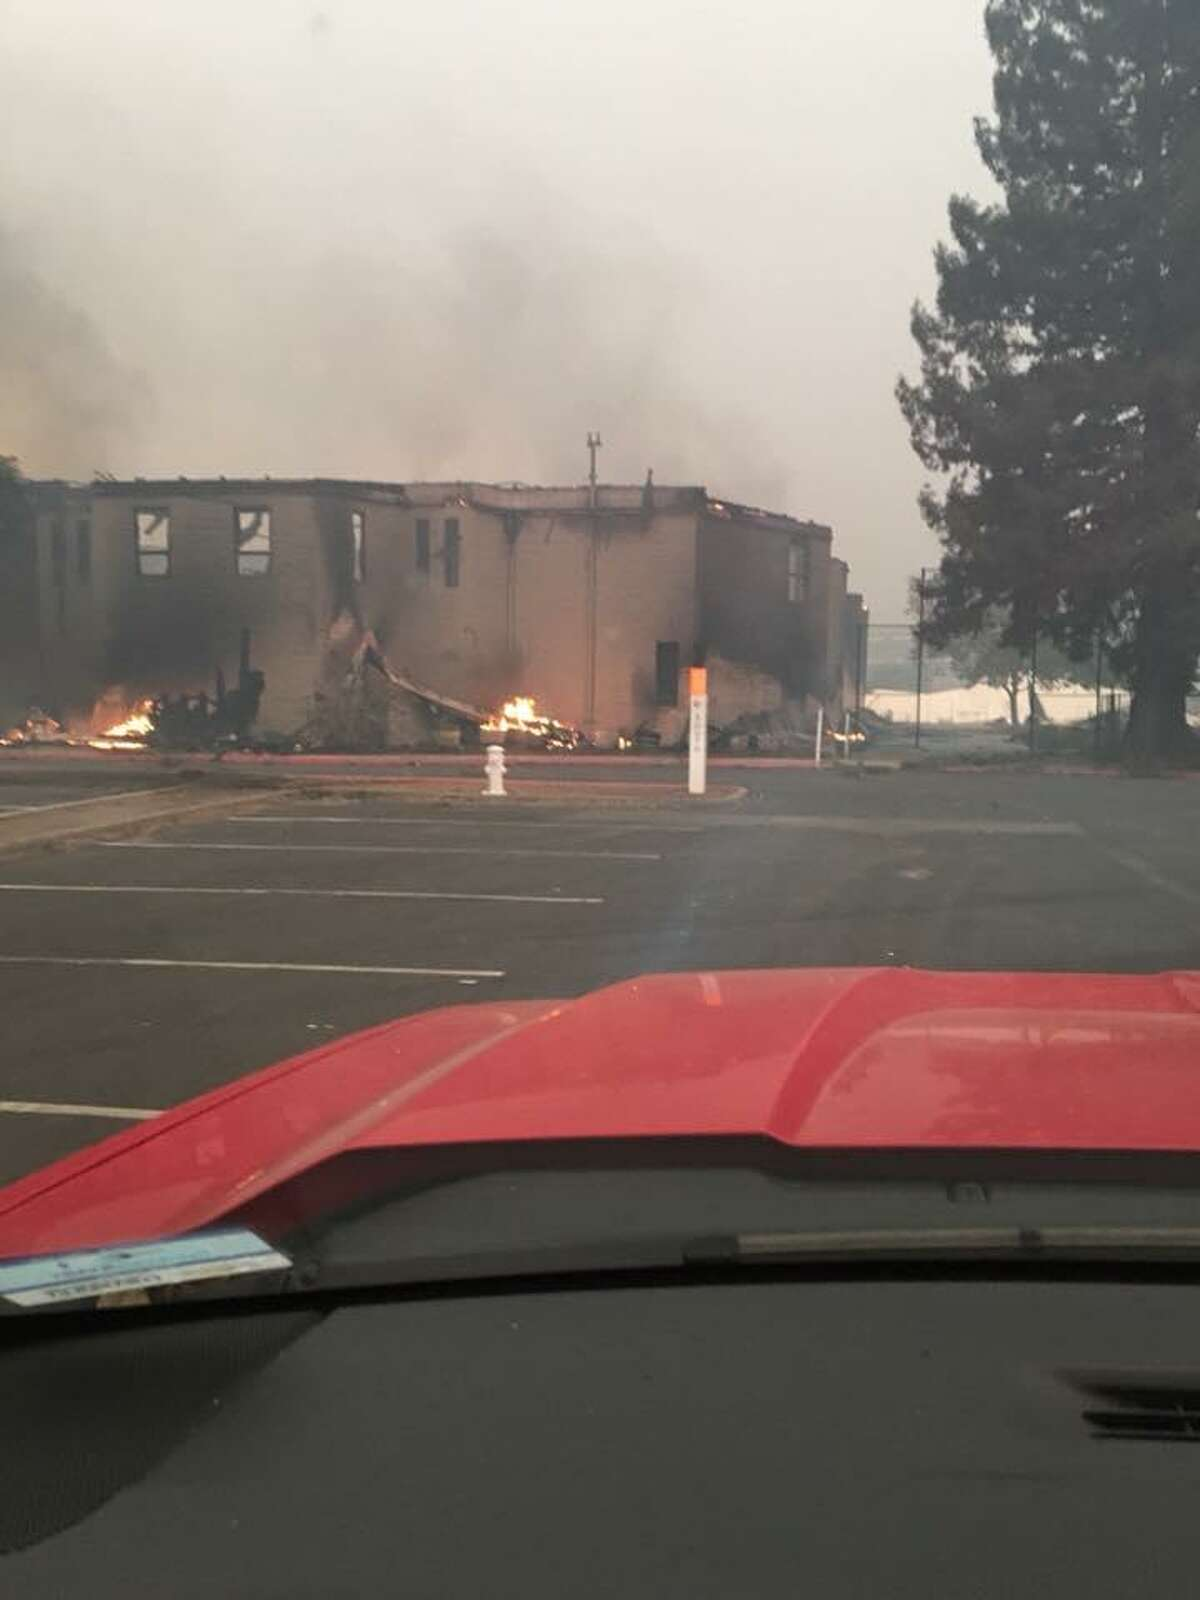 A look at the still-smoldering Anova Center for Education, which school officials said will leave 120 autistic students without a school to attend.